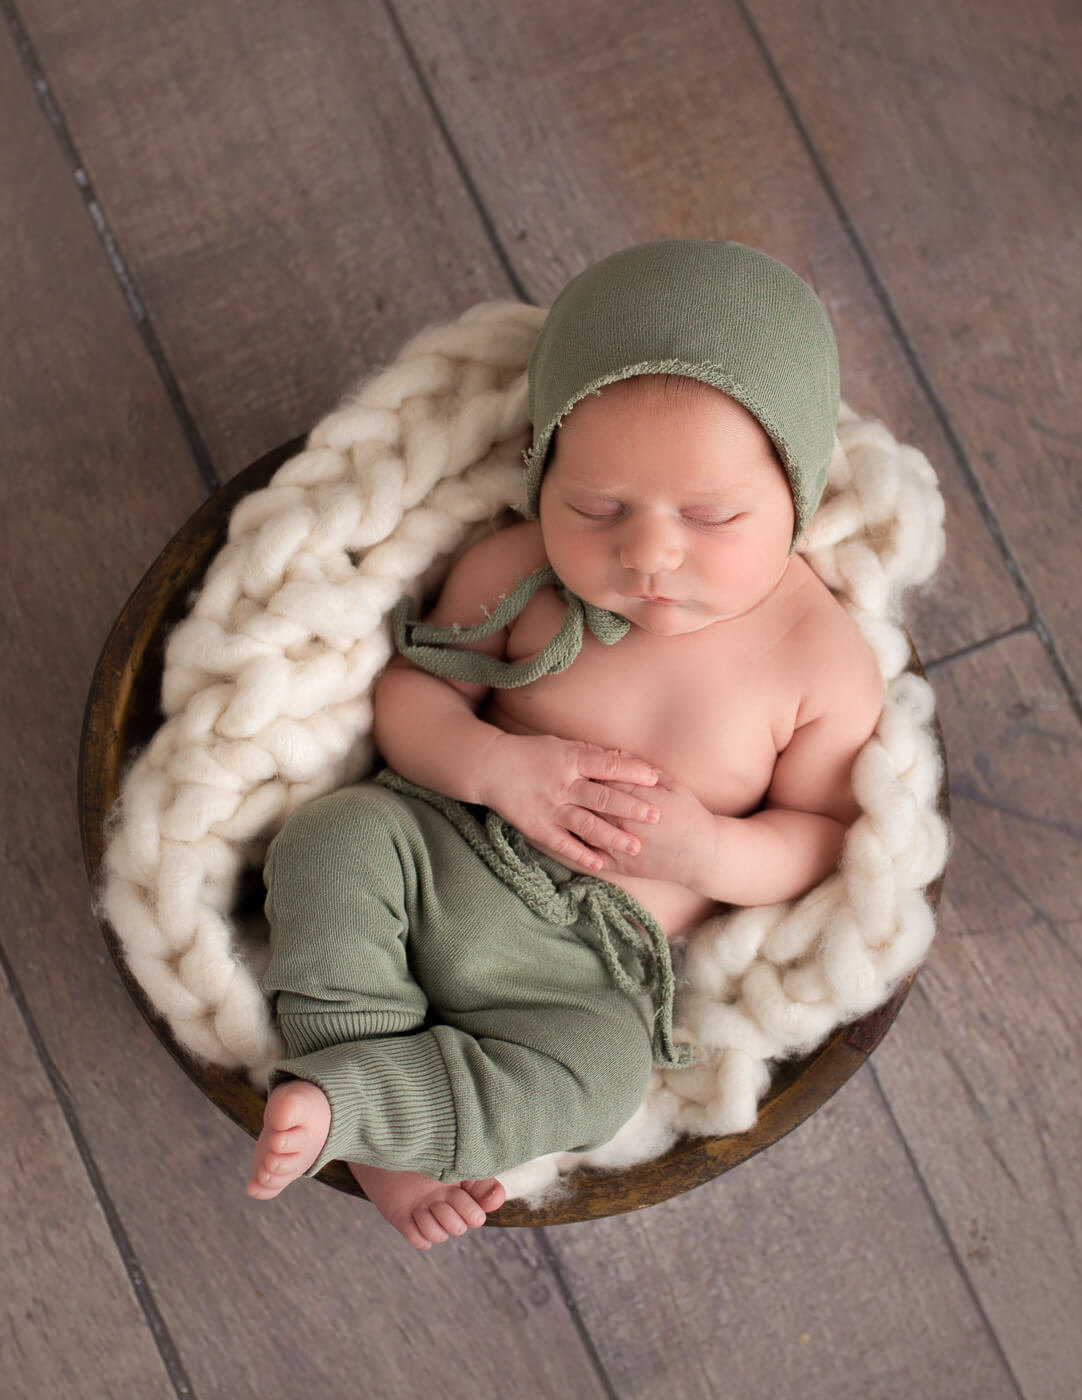 Sweet newborn boy sleeping in a wooden bowl in Rochester, NY.